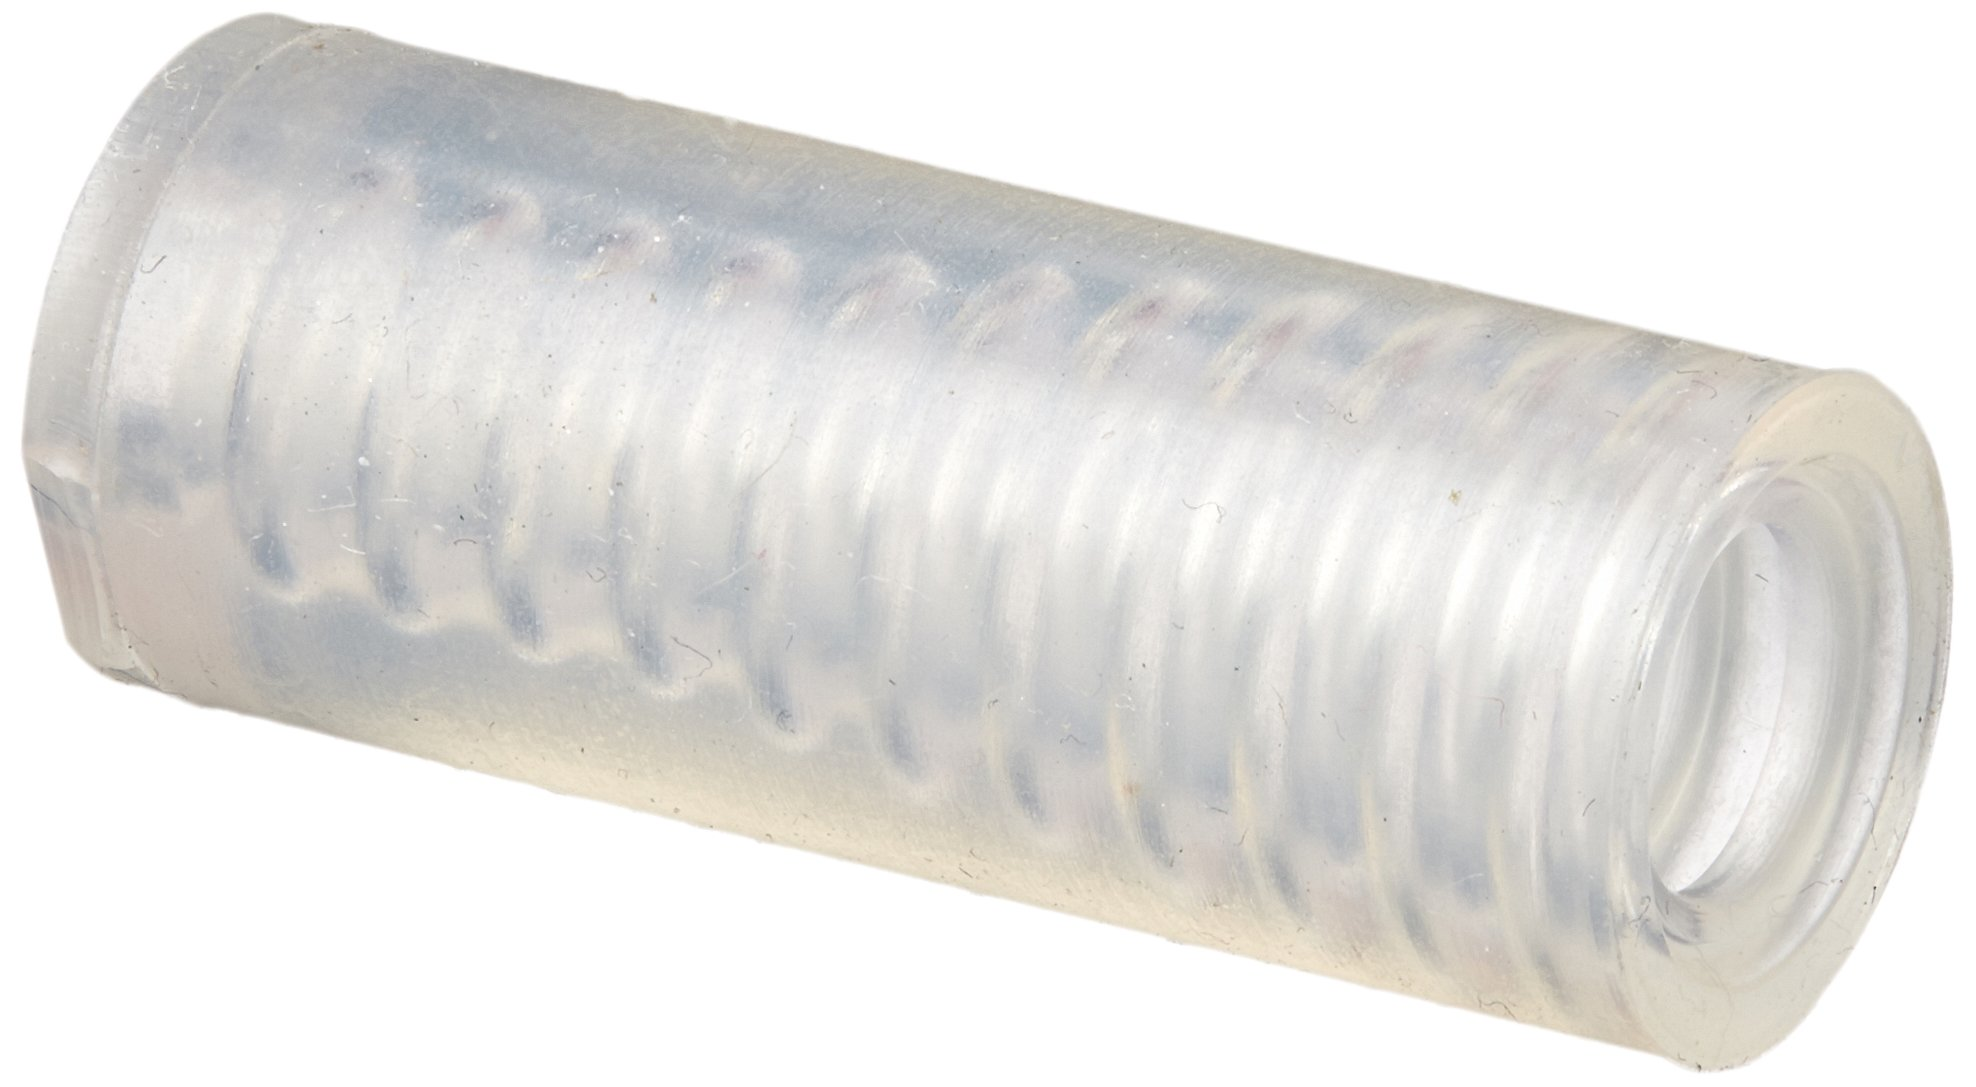 Drummond Scientific 4-000-002 Rubber Insert for Pipet-Aid (Pack of 2)